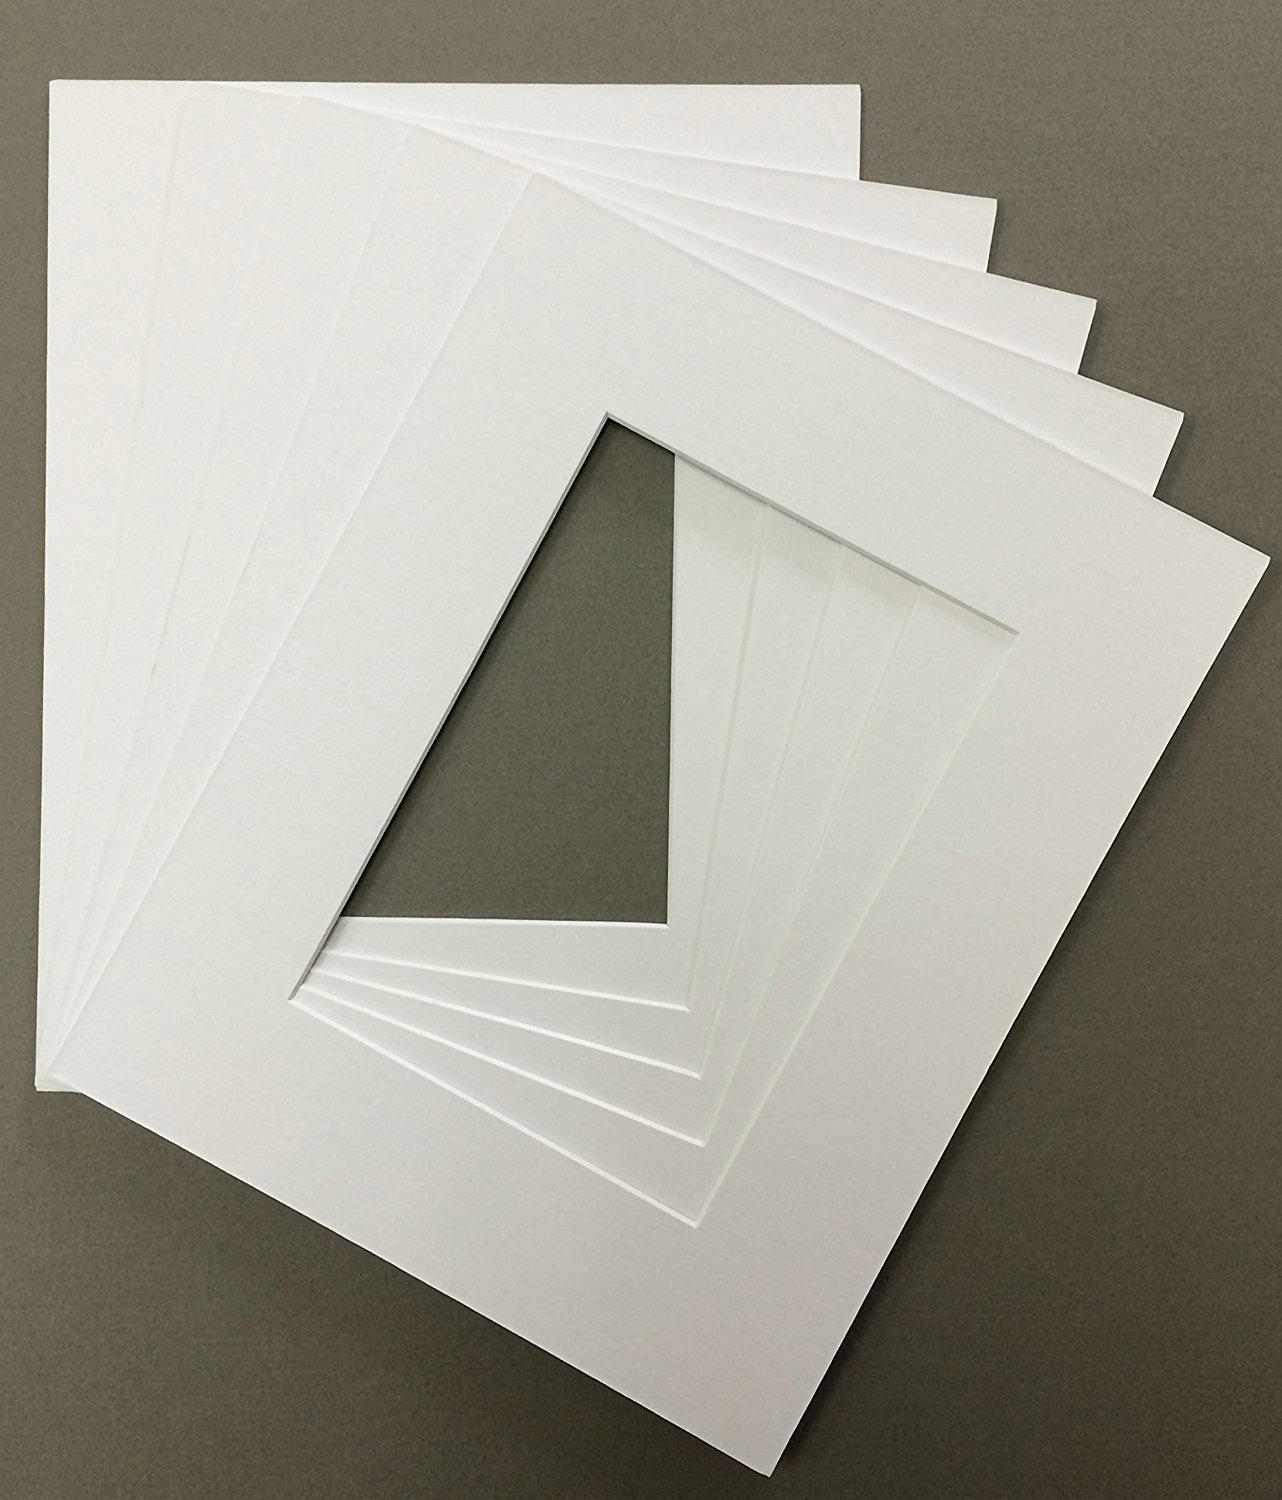 Pack of 5 20x24 White Picture Mats with White Core Bevel Cut for 16x20 Pictures by Amazon Photo Mats